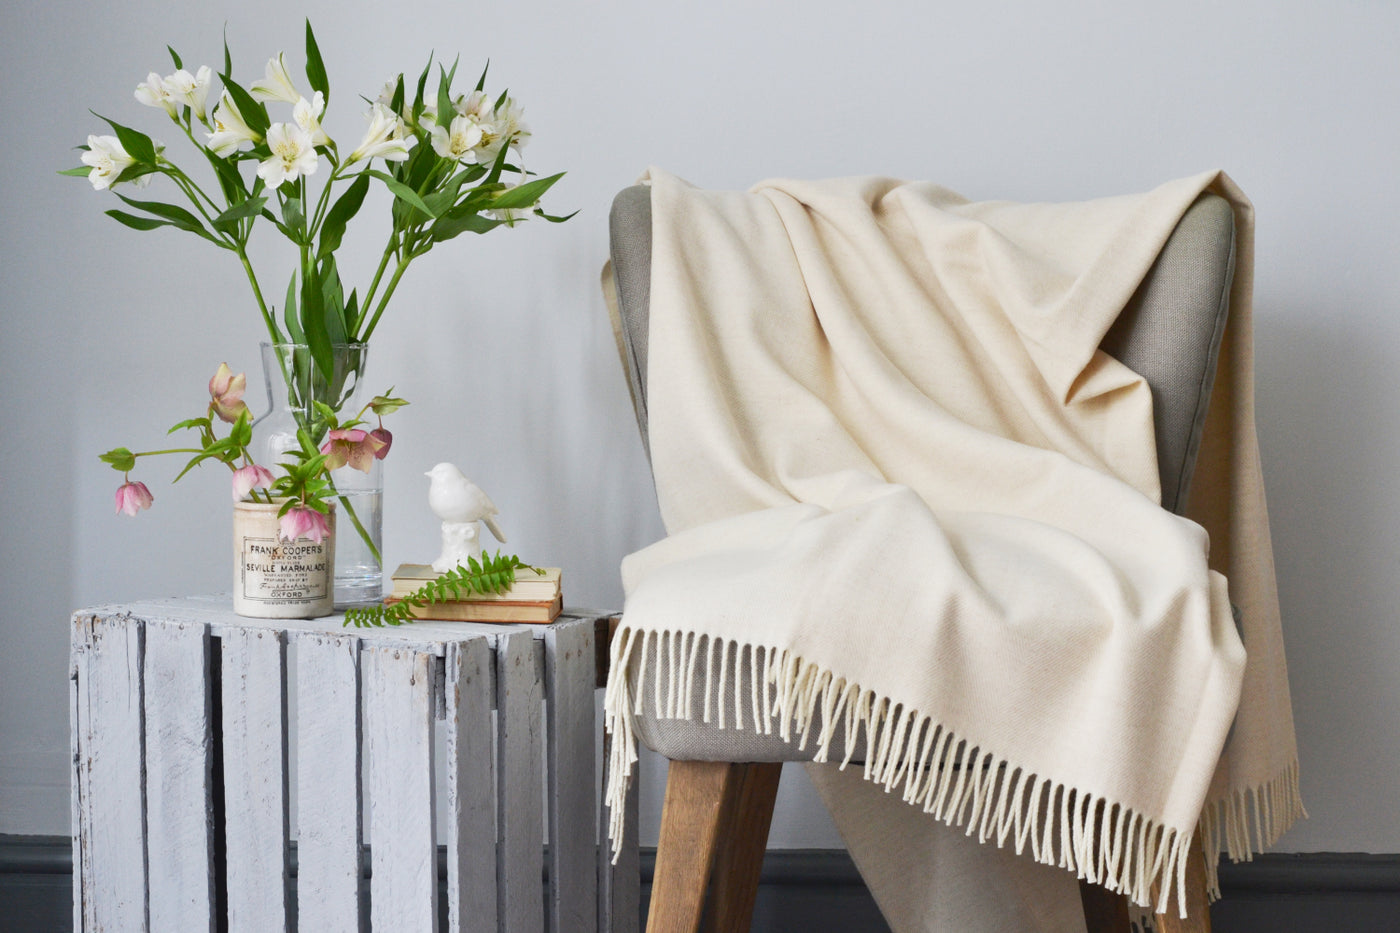 An XL wool blanket from The British Blanket Company is spread out across a beautiful chair